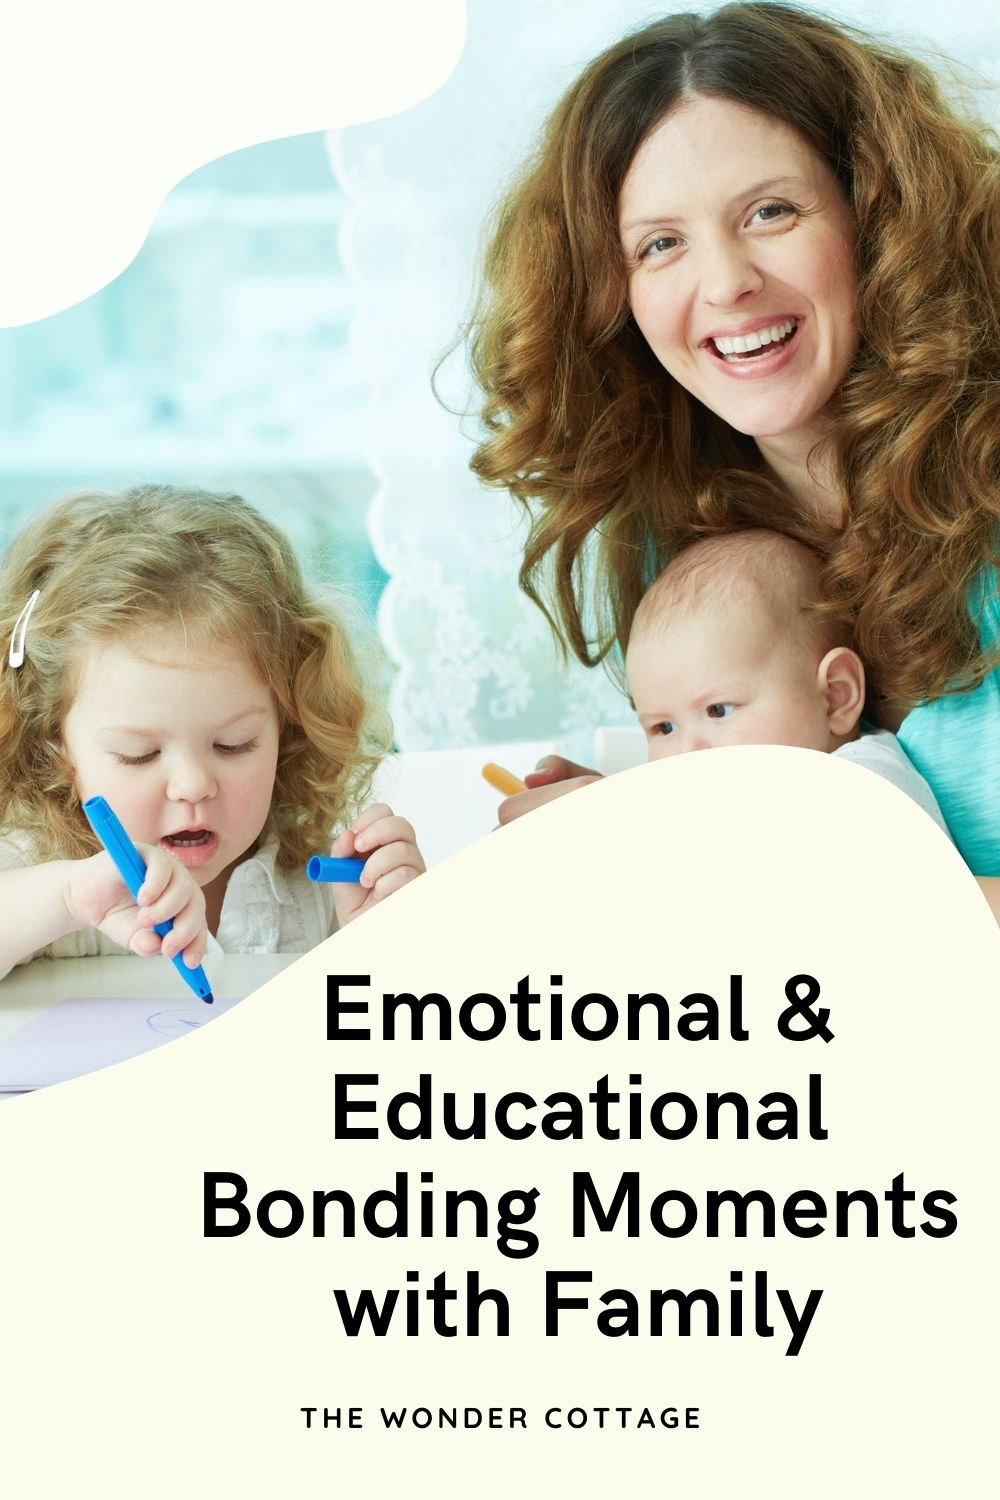 Emotional and Educational Bonding Moments with Family